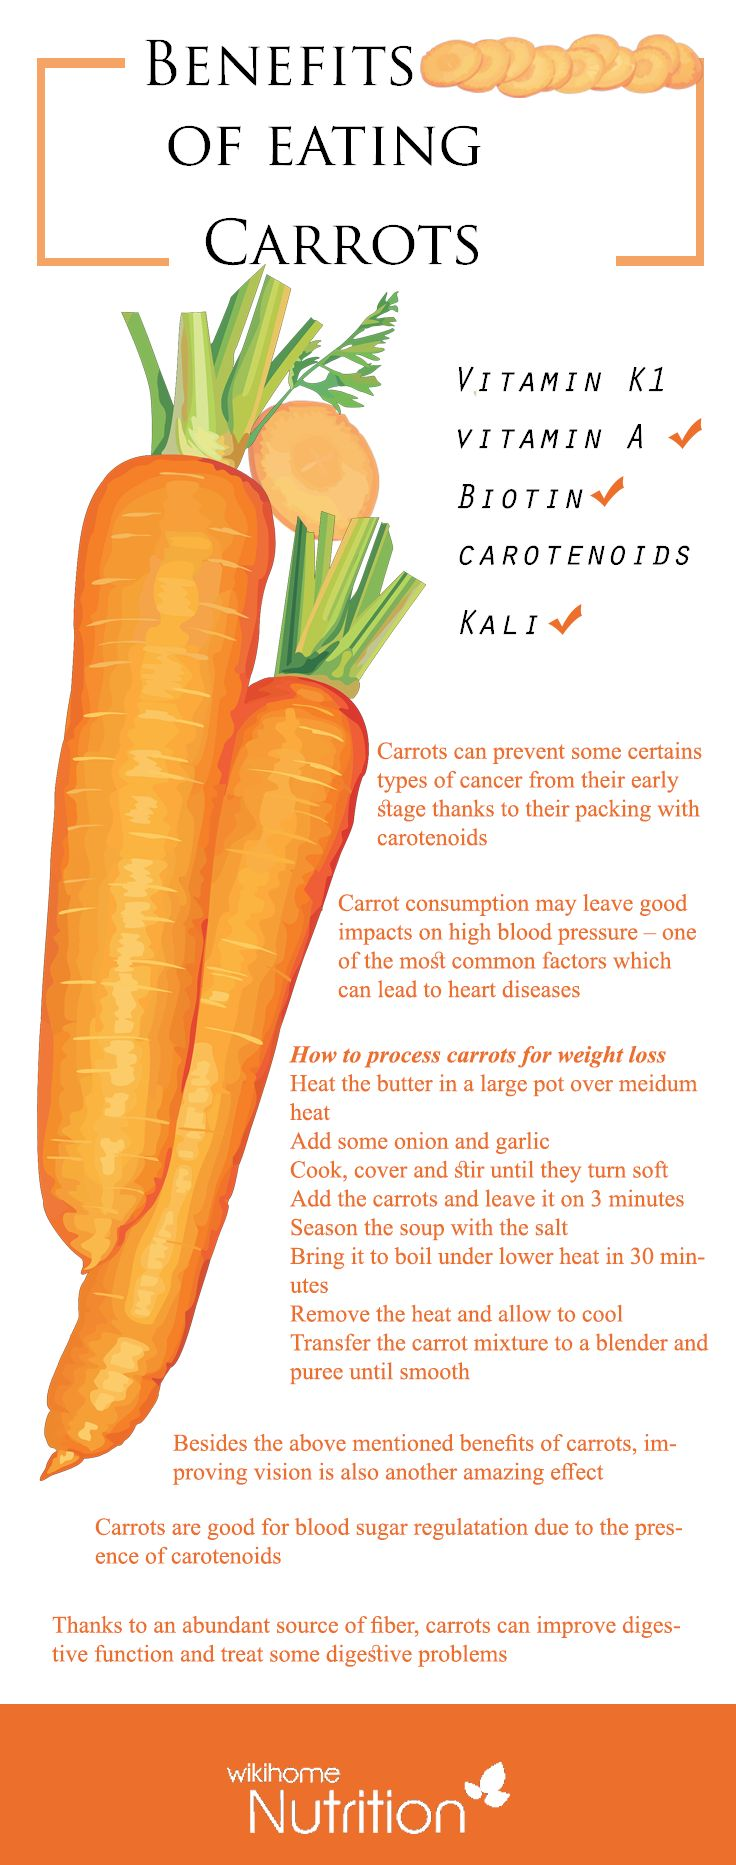 You are not highly suggested to cut down on your carrots intake because of the following reasons.